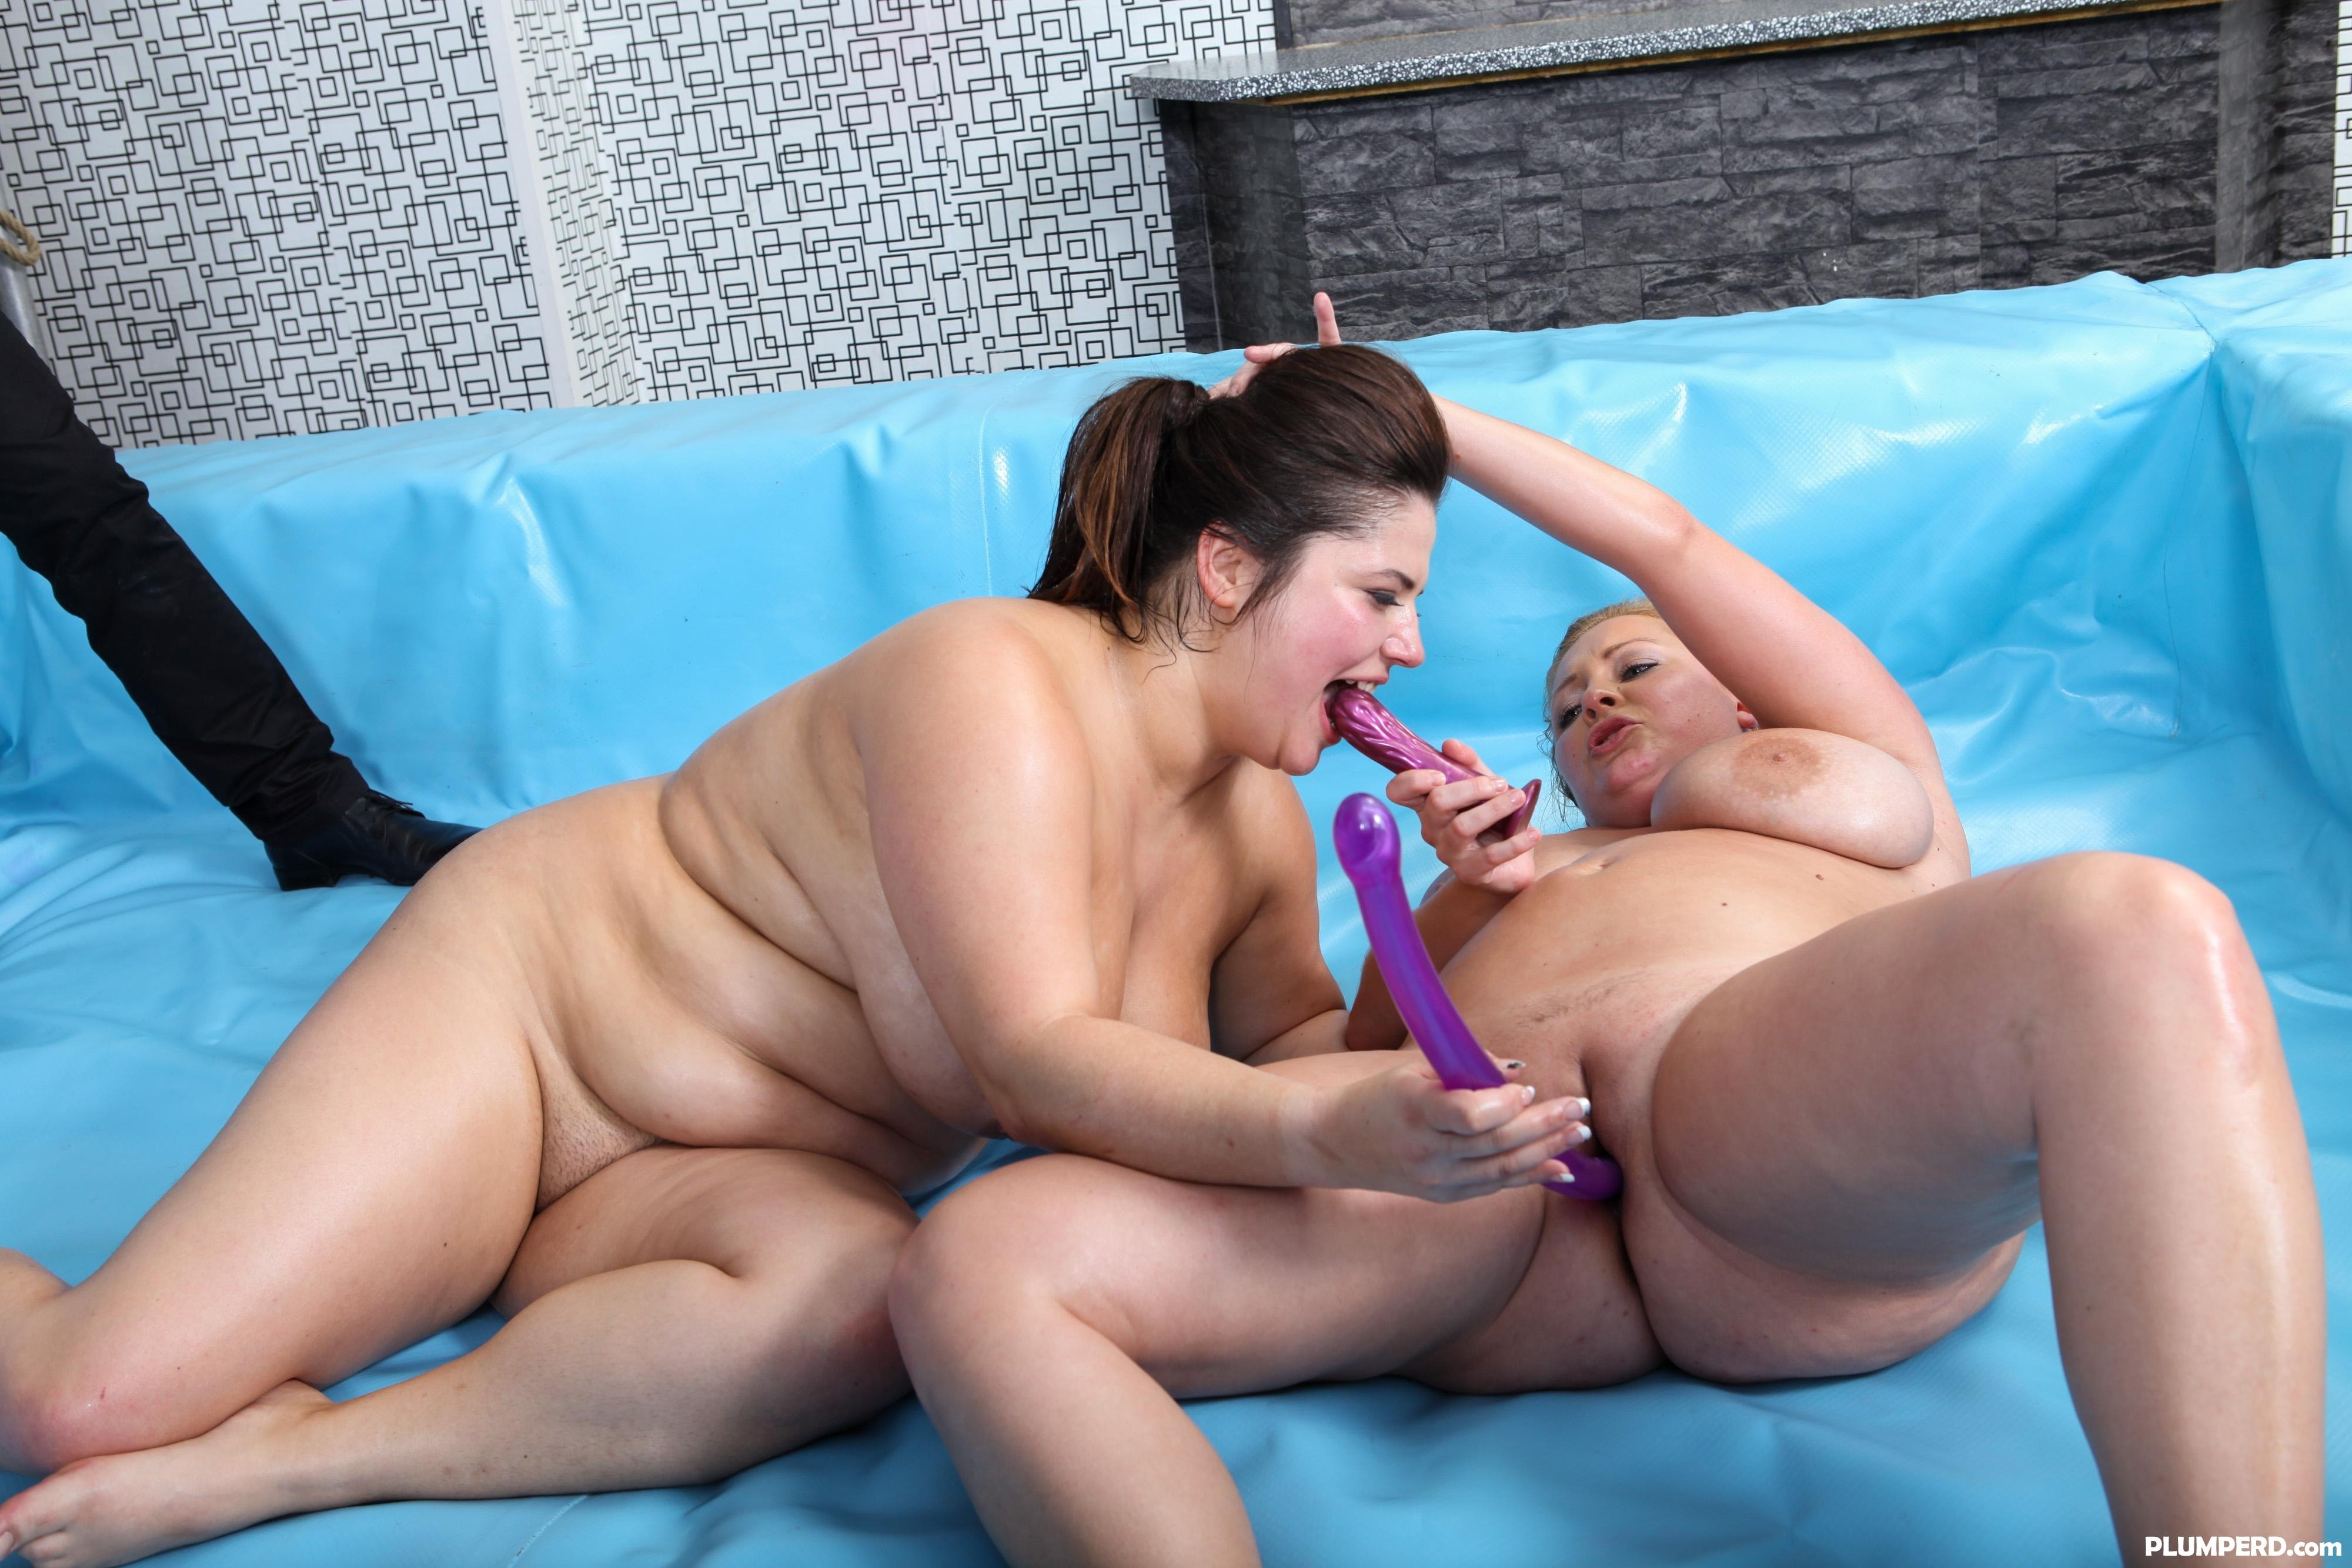 bbw mom sex gp add photo